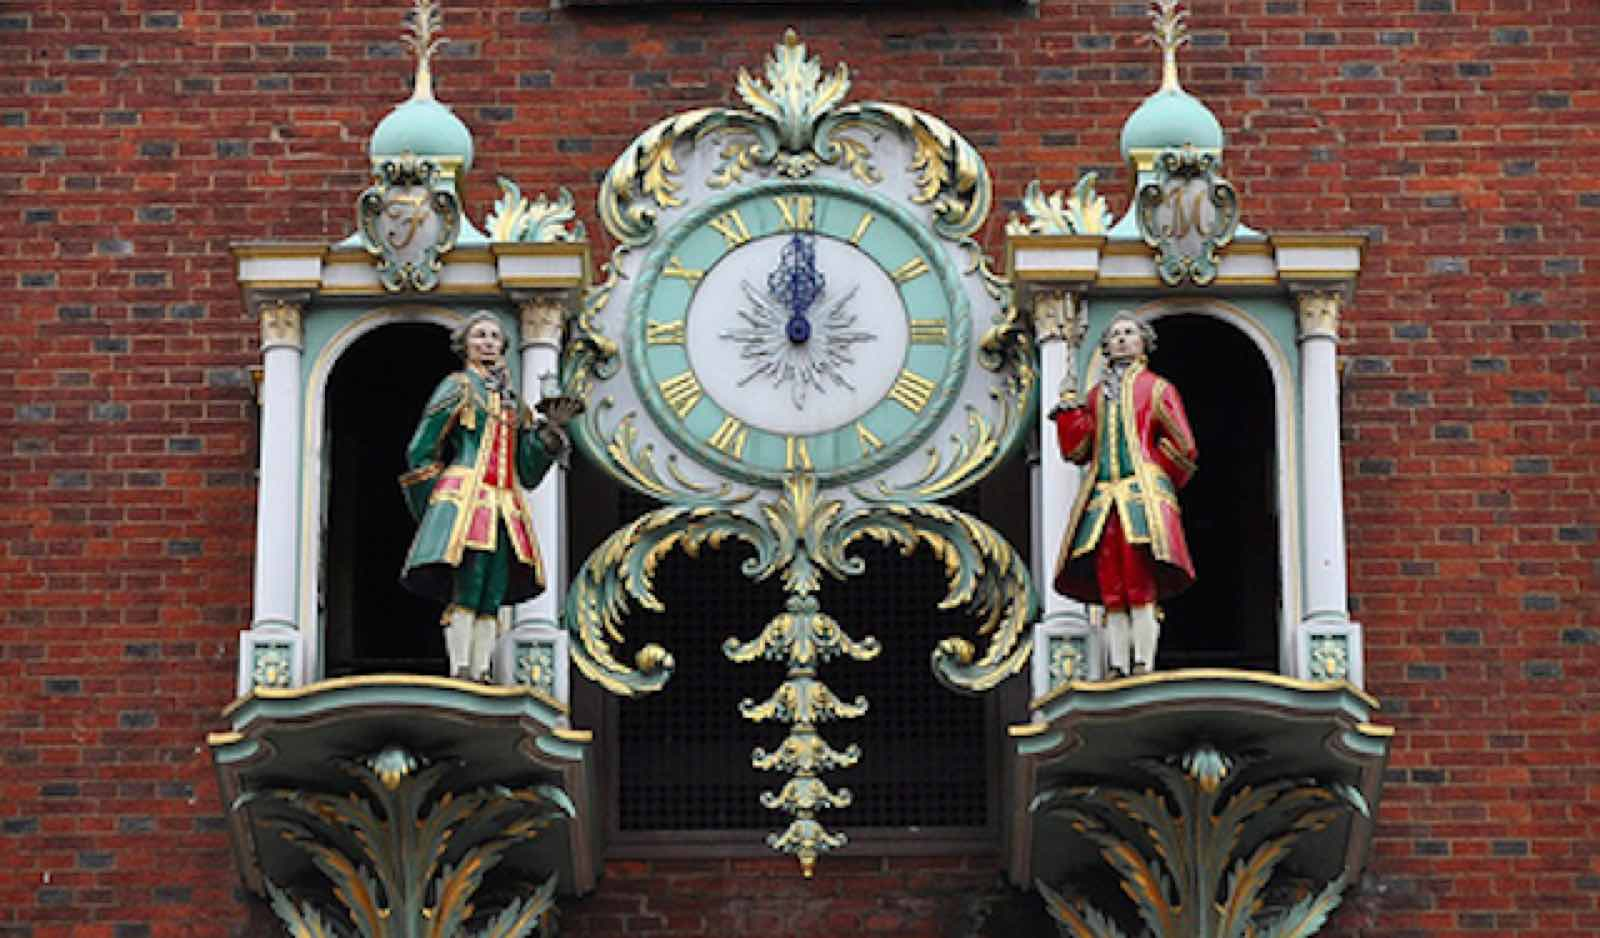 HISTORIC TIME: The clock weights three tonnes, and each of the men is 4ft high.